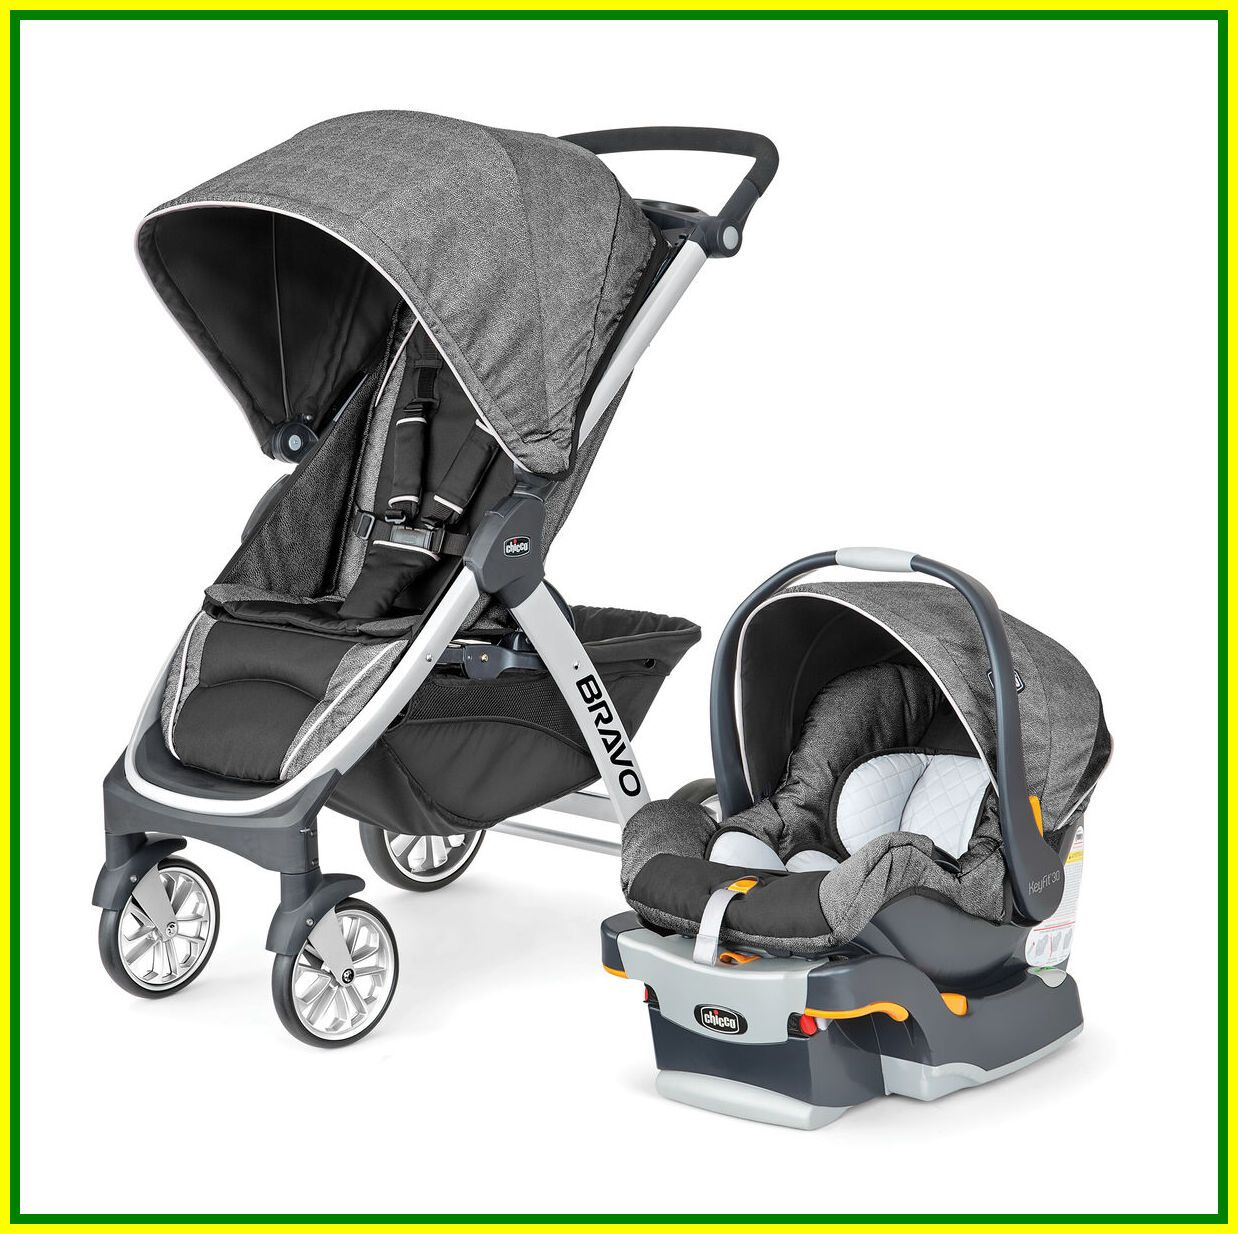 95 reference of stroller Chicco chicco bravo trio in 2020